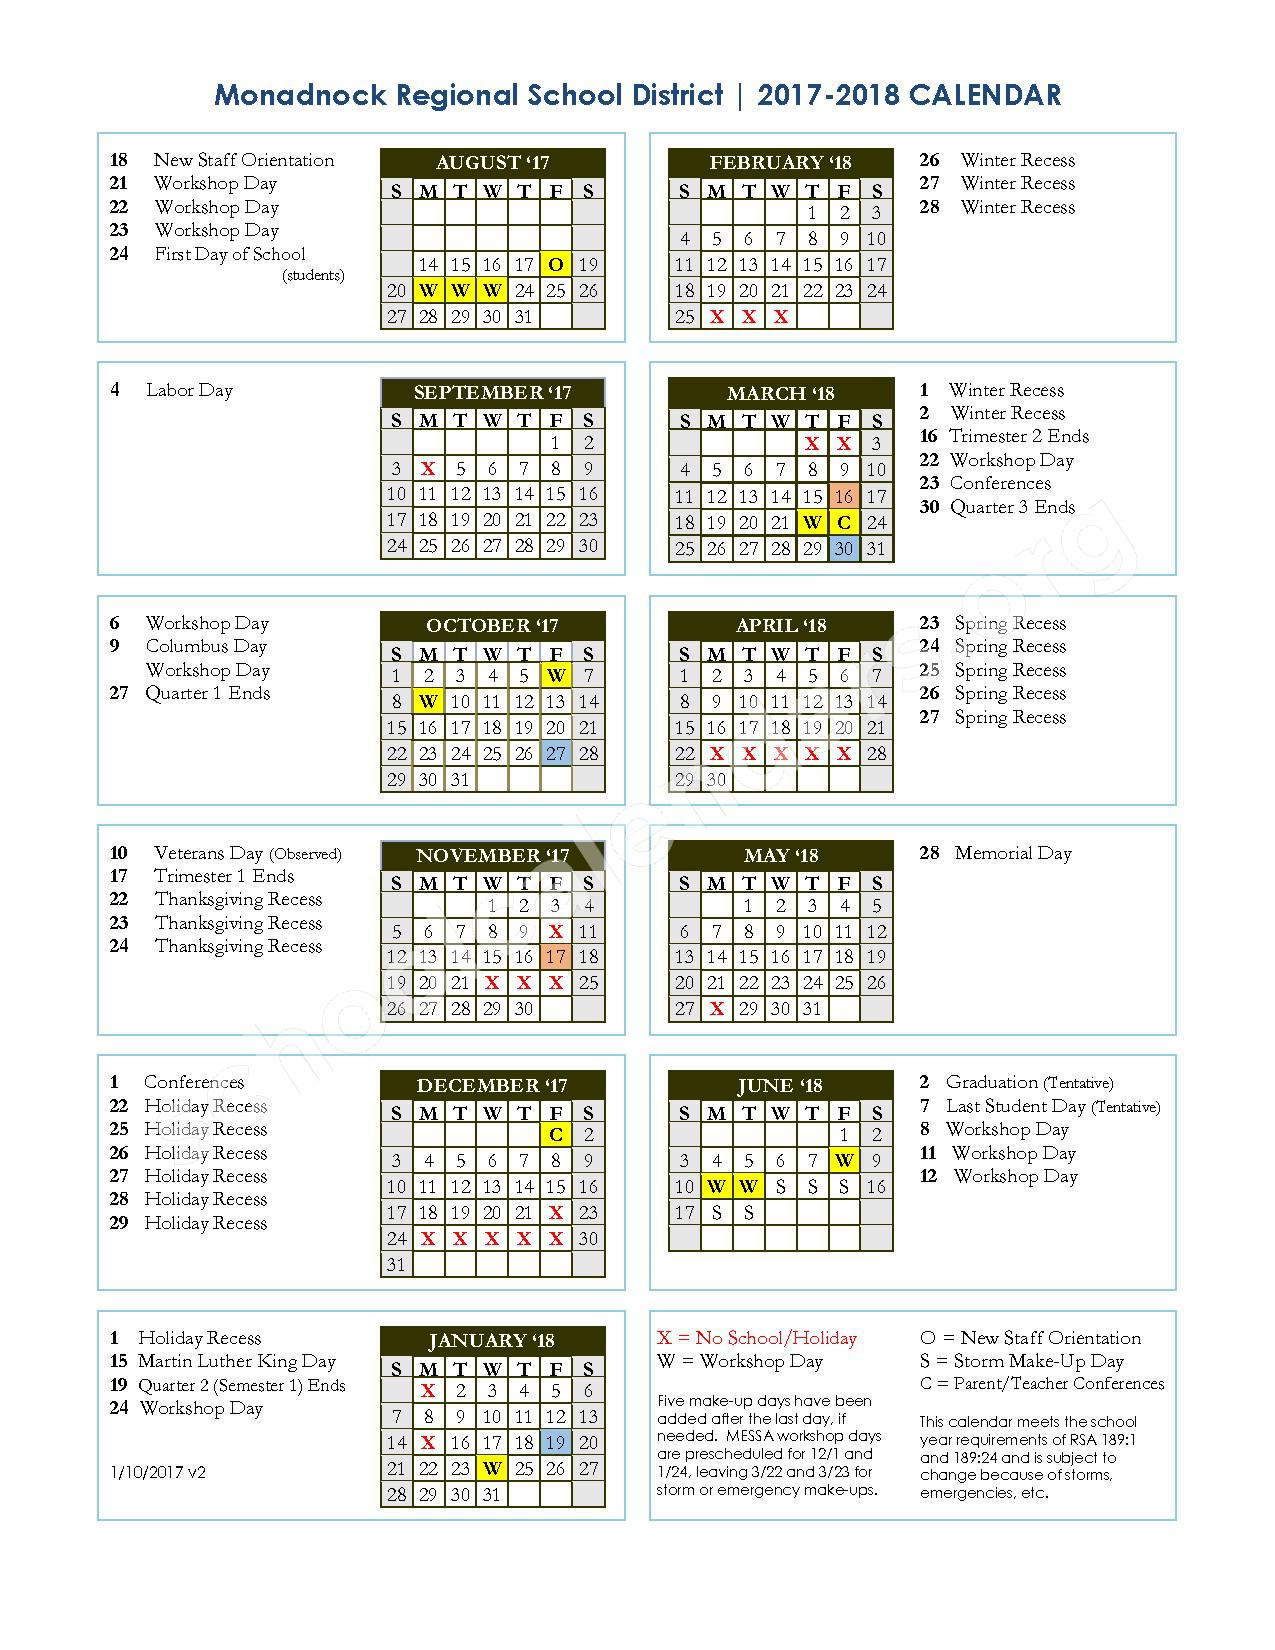 2017 - 2018 School Calendar – SAU 93 - Monadnock Regional School District – page 1